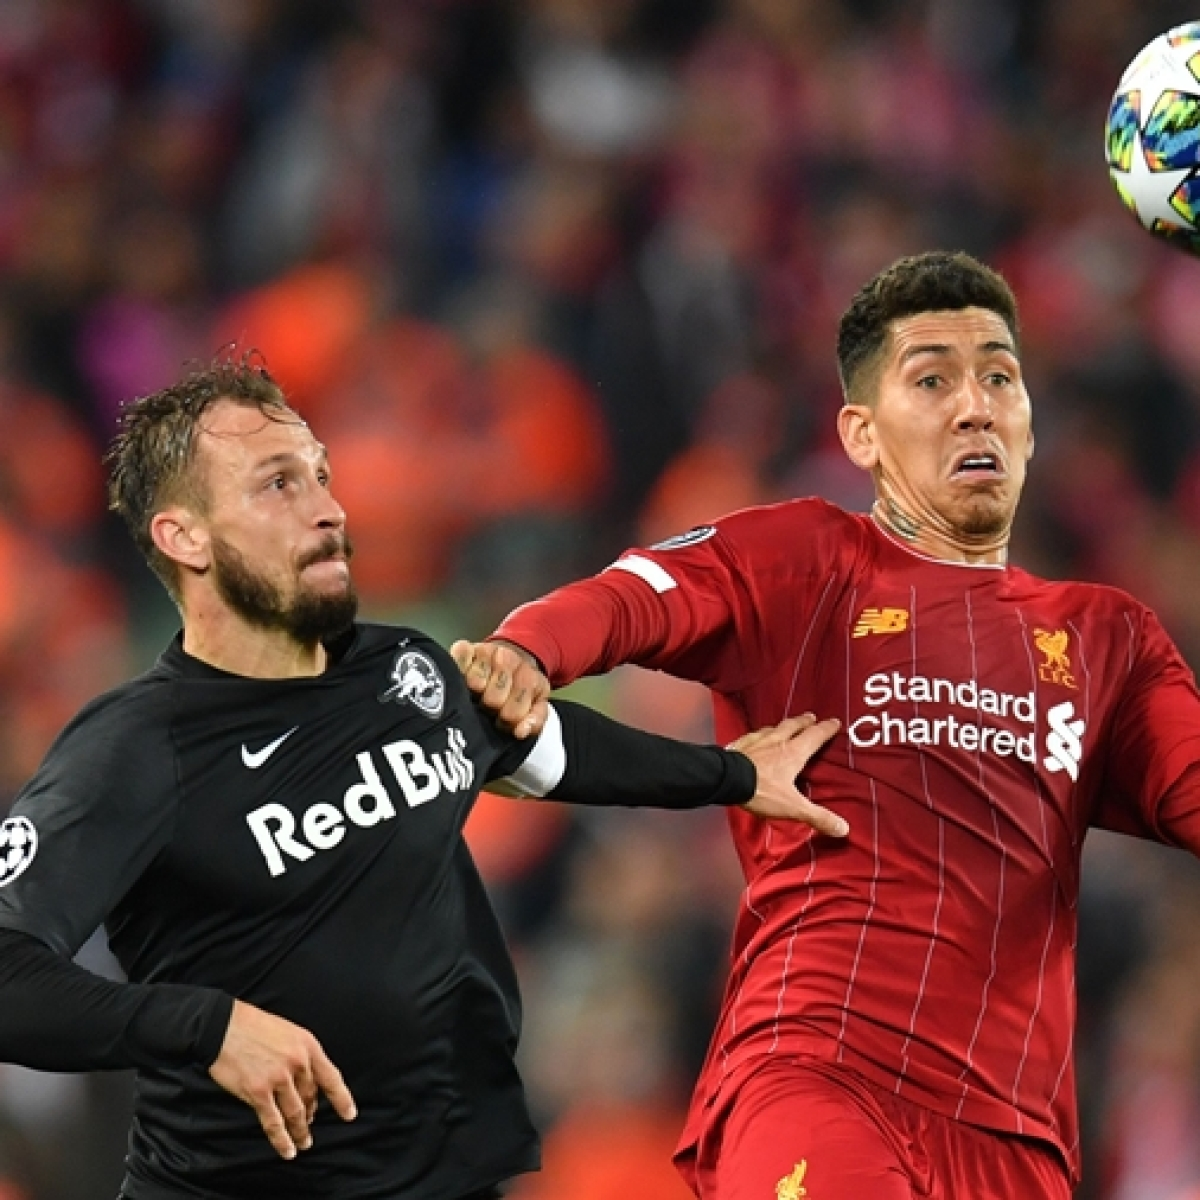 UEFA Champions League: Liverpool wins seven-goal thriller against Red Bull Salzburg